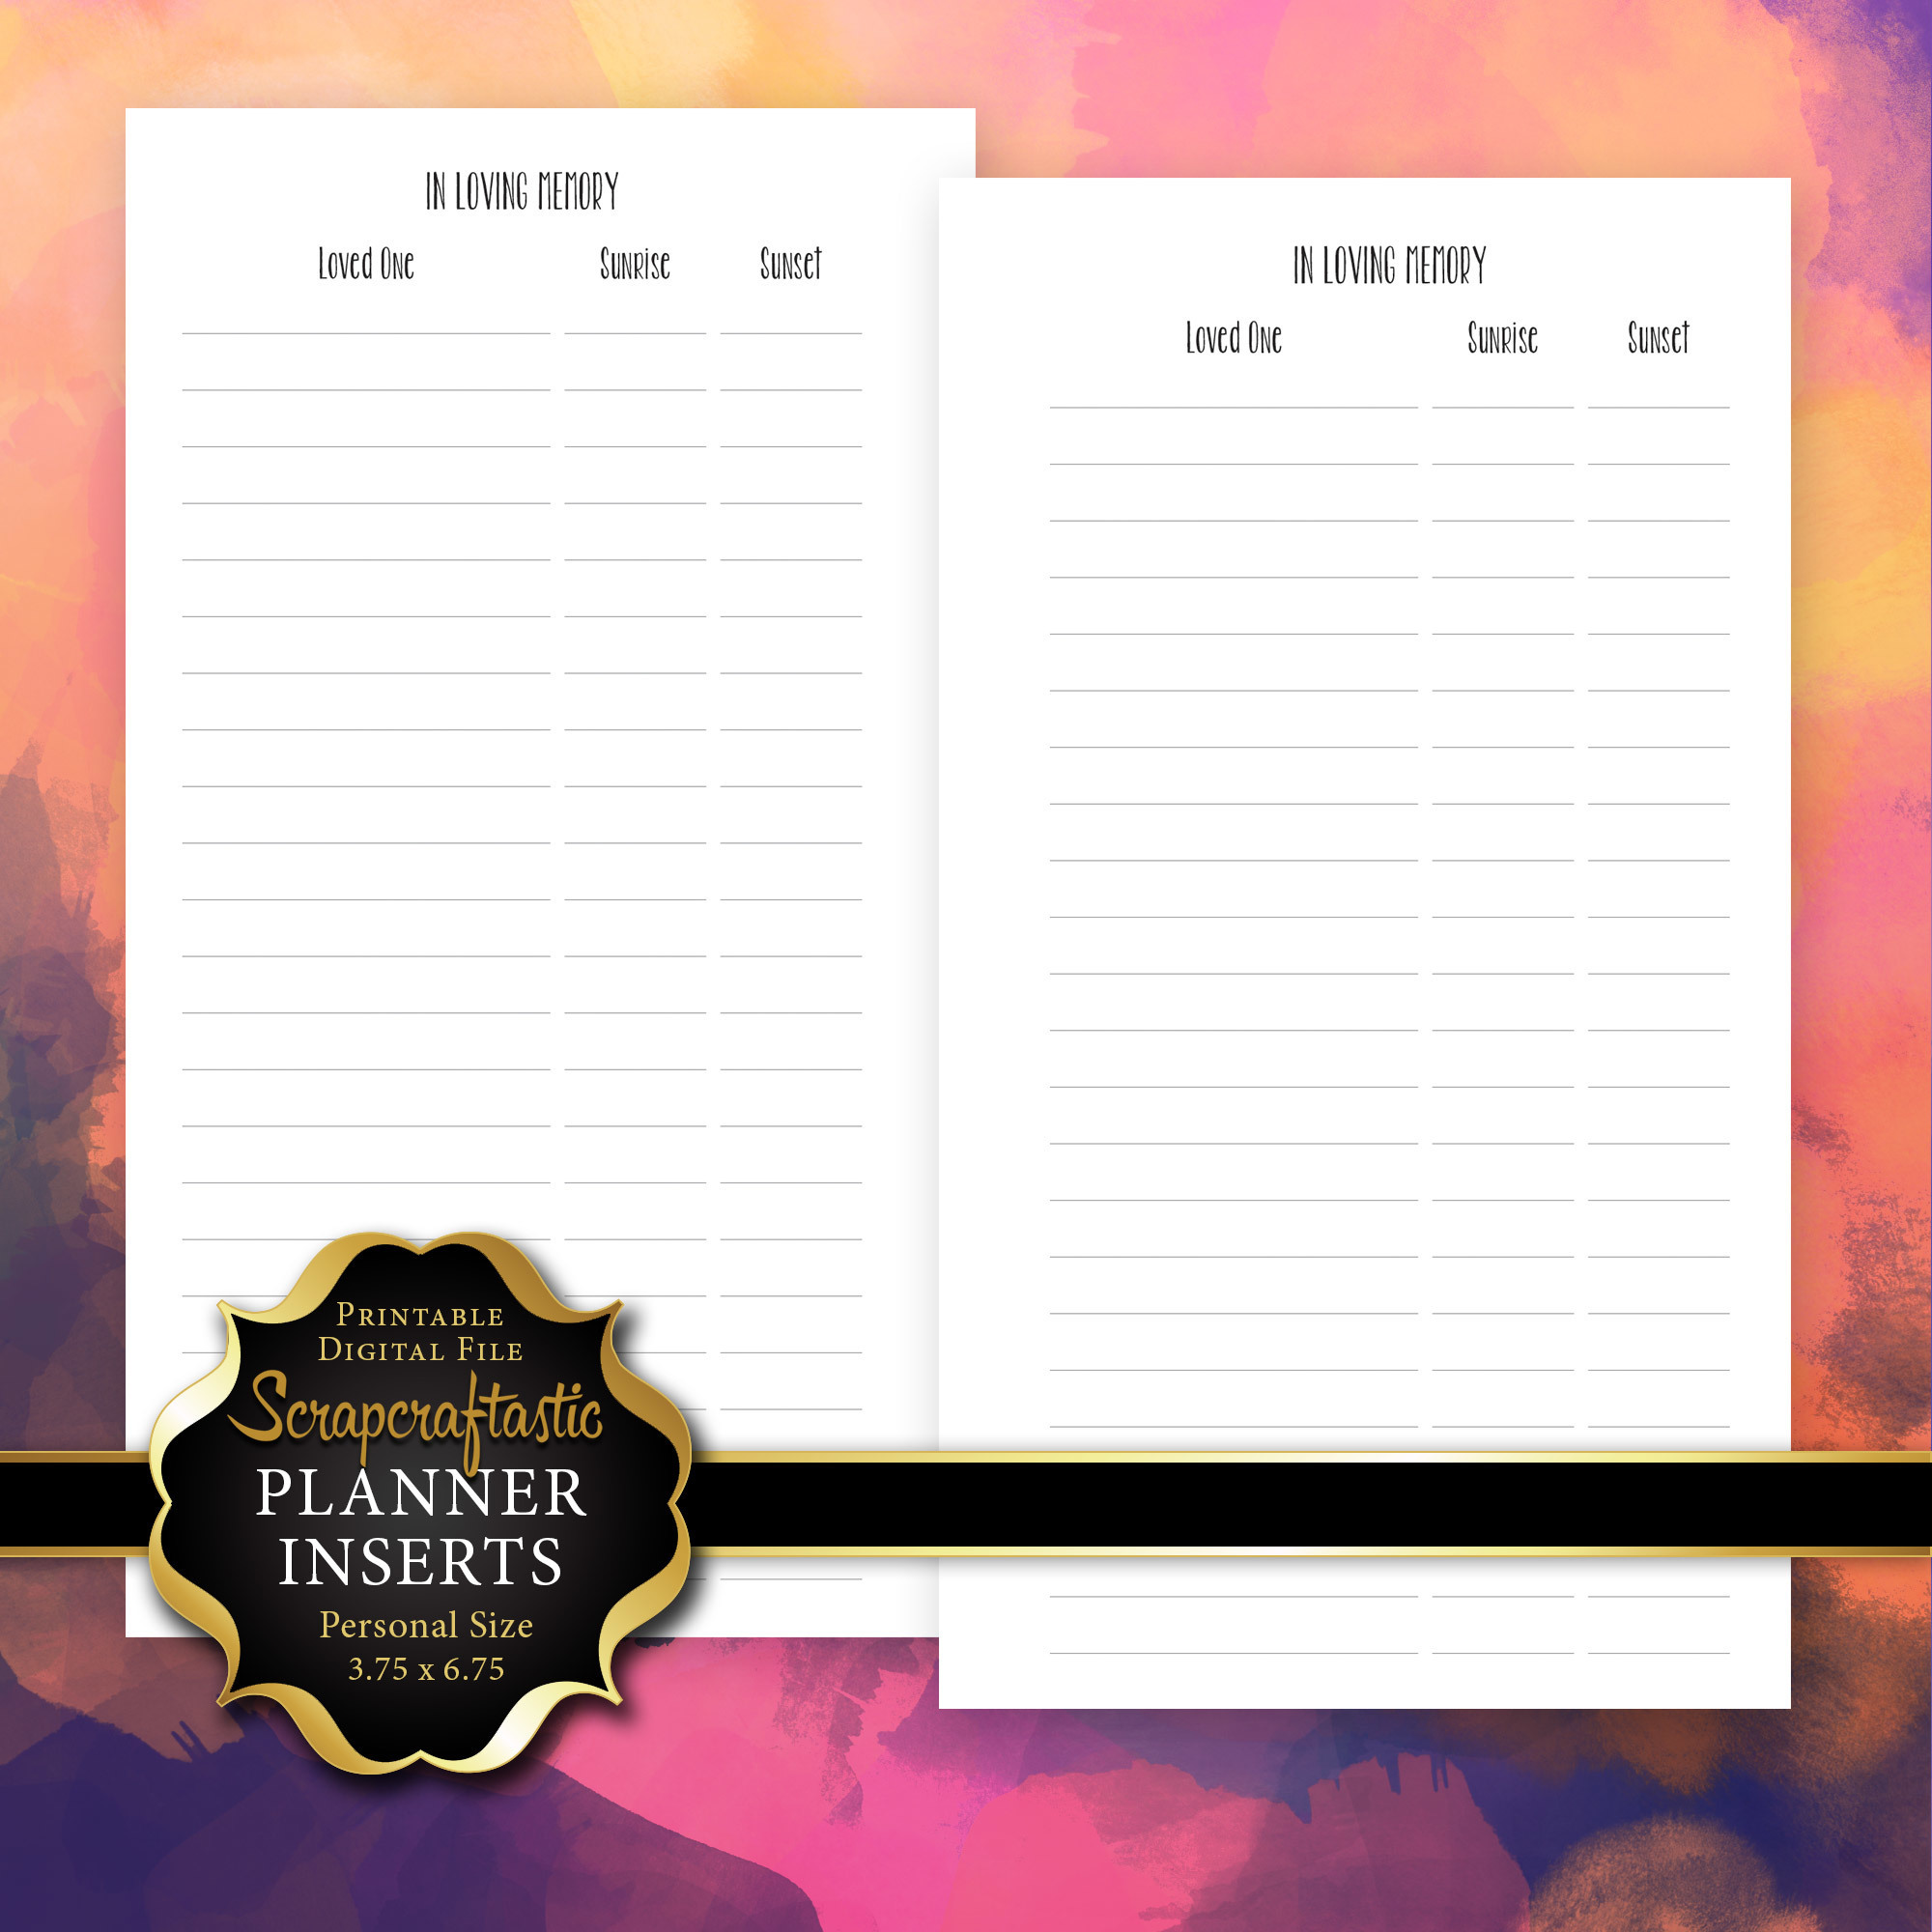 In Loving Memory Personal Size Printable Planner Inserts 00237